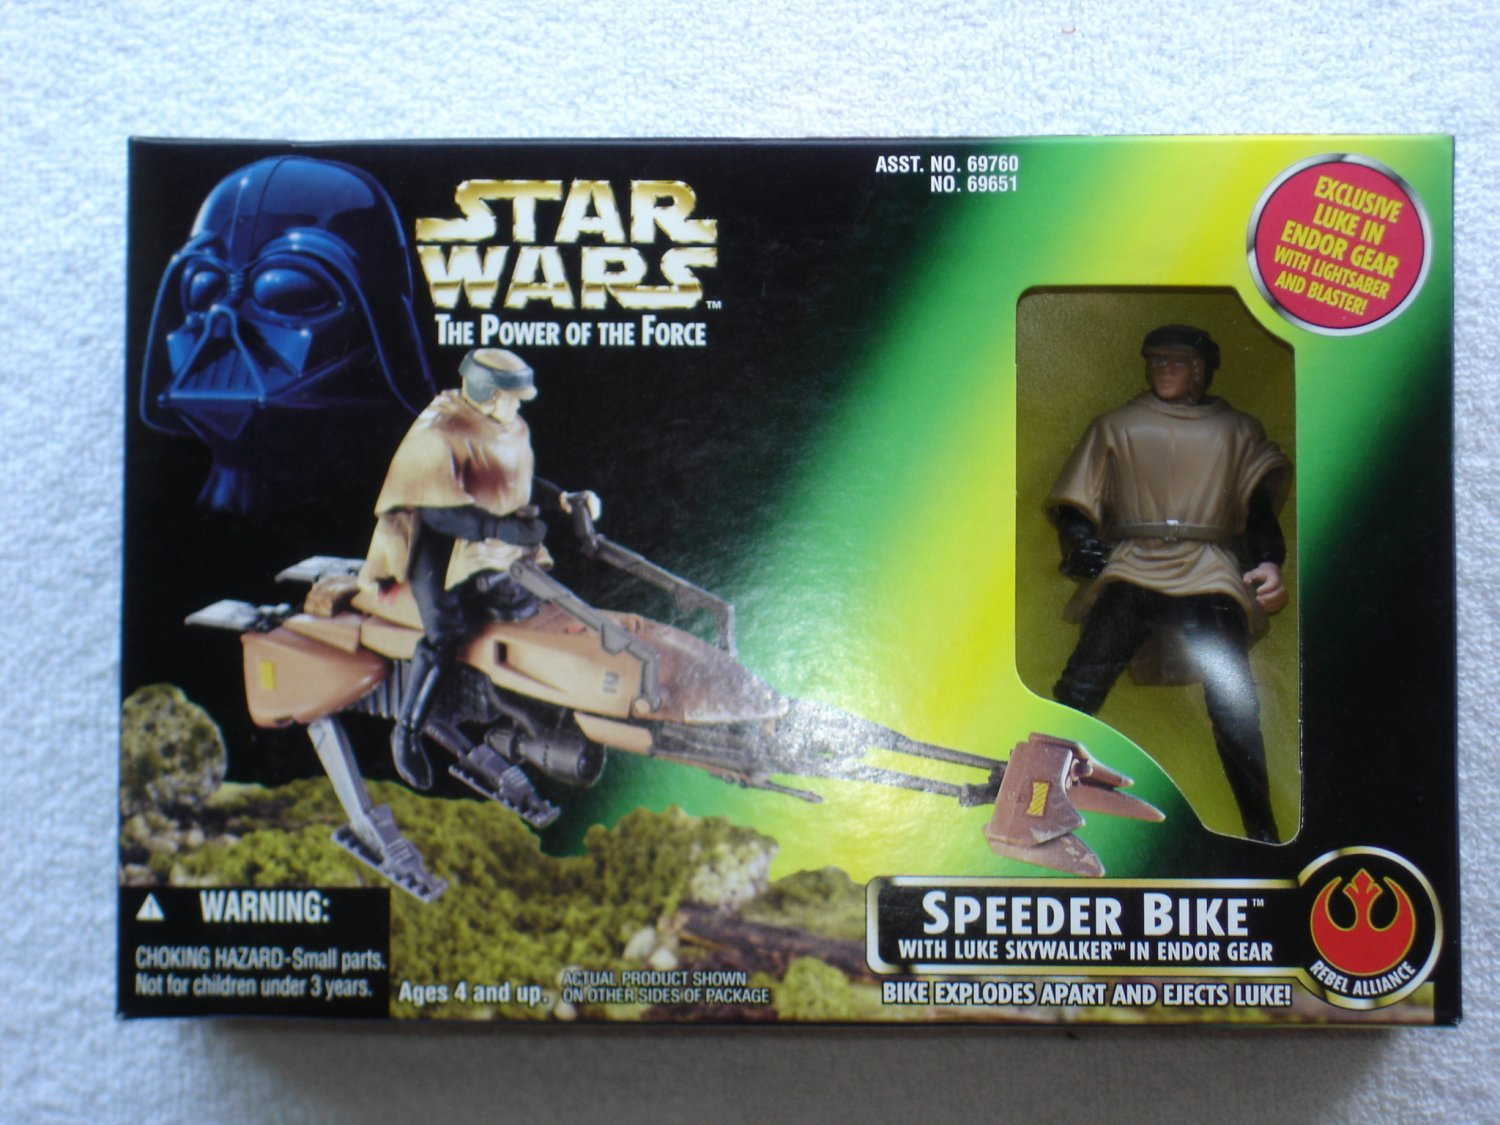 Star Wars POTF Speeder Bike with Luke Skywalker